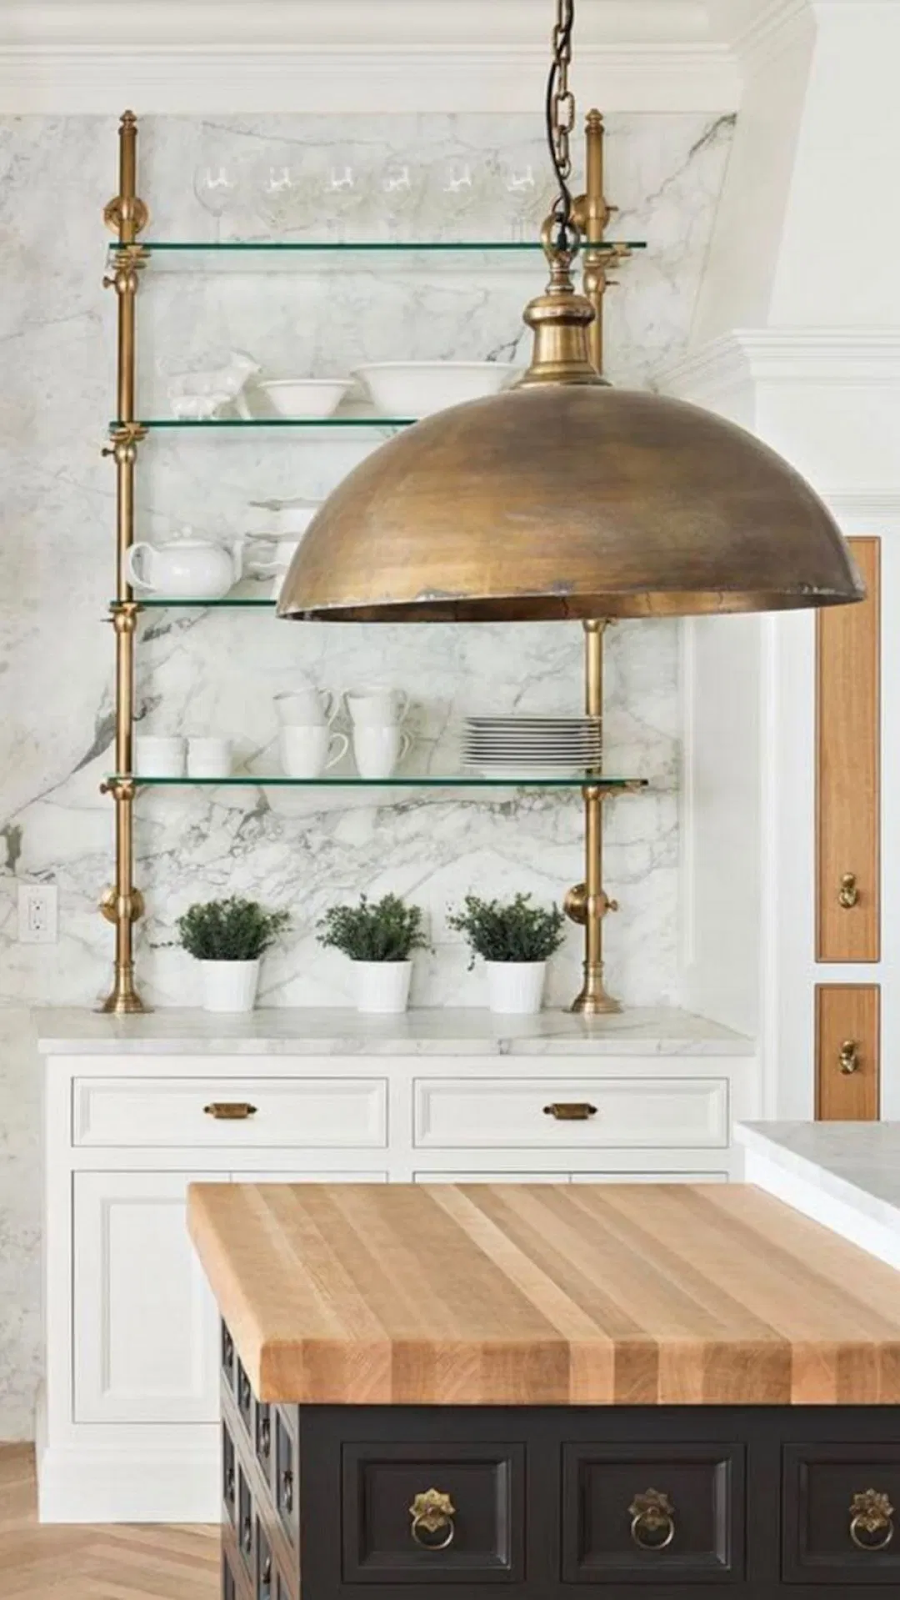 white kitchen design with antique brass pendant light and open shelving for ceramic dishware. a black island with butcher top countertop sits in the middle of the space